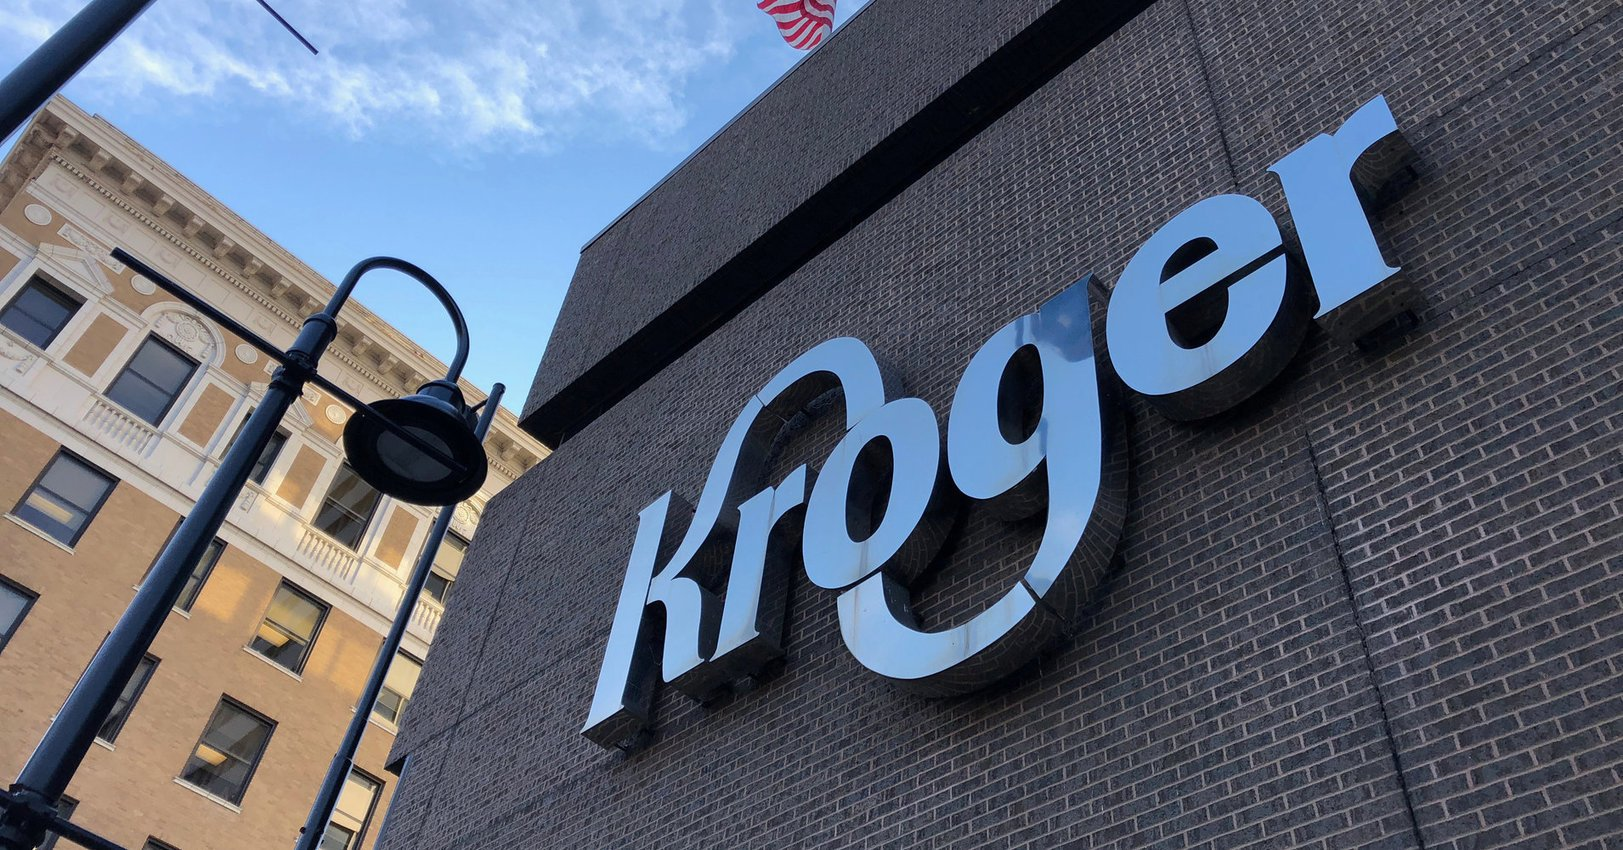 , Kroger Will Phase Out Plastic Bags By 2025 To 'Protect Our Planet', The Circular Economy, The Circular Economy